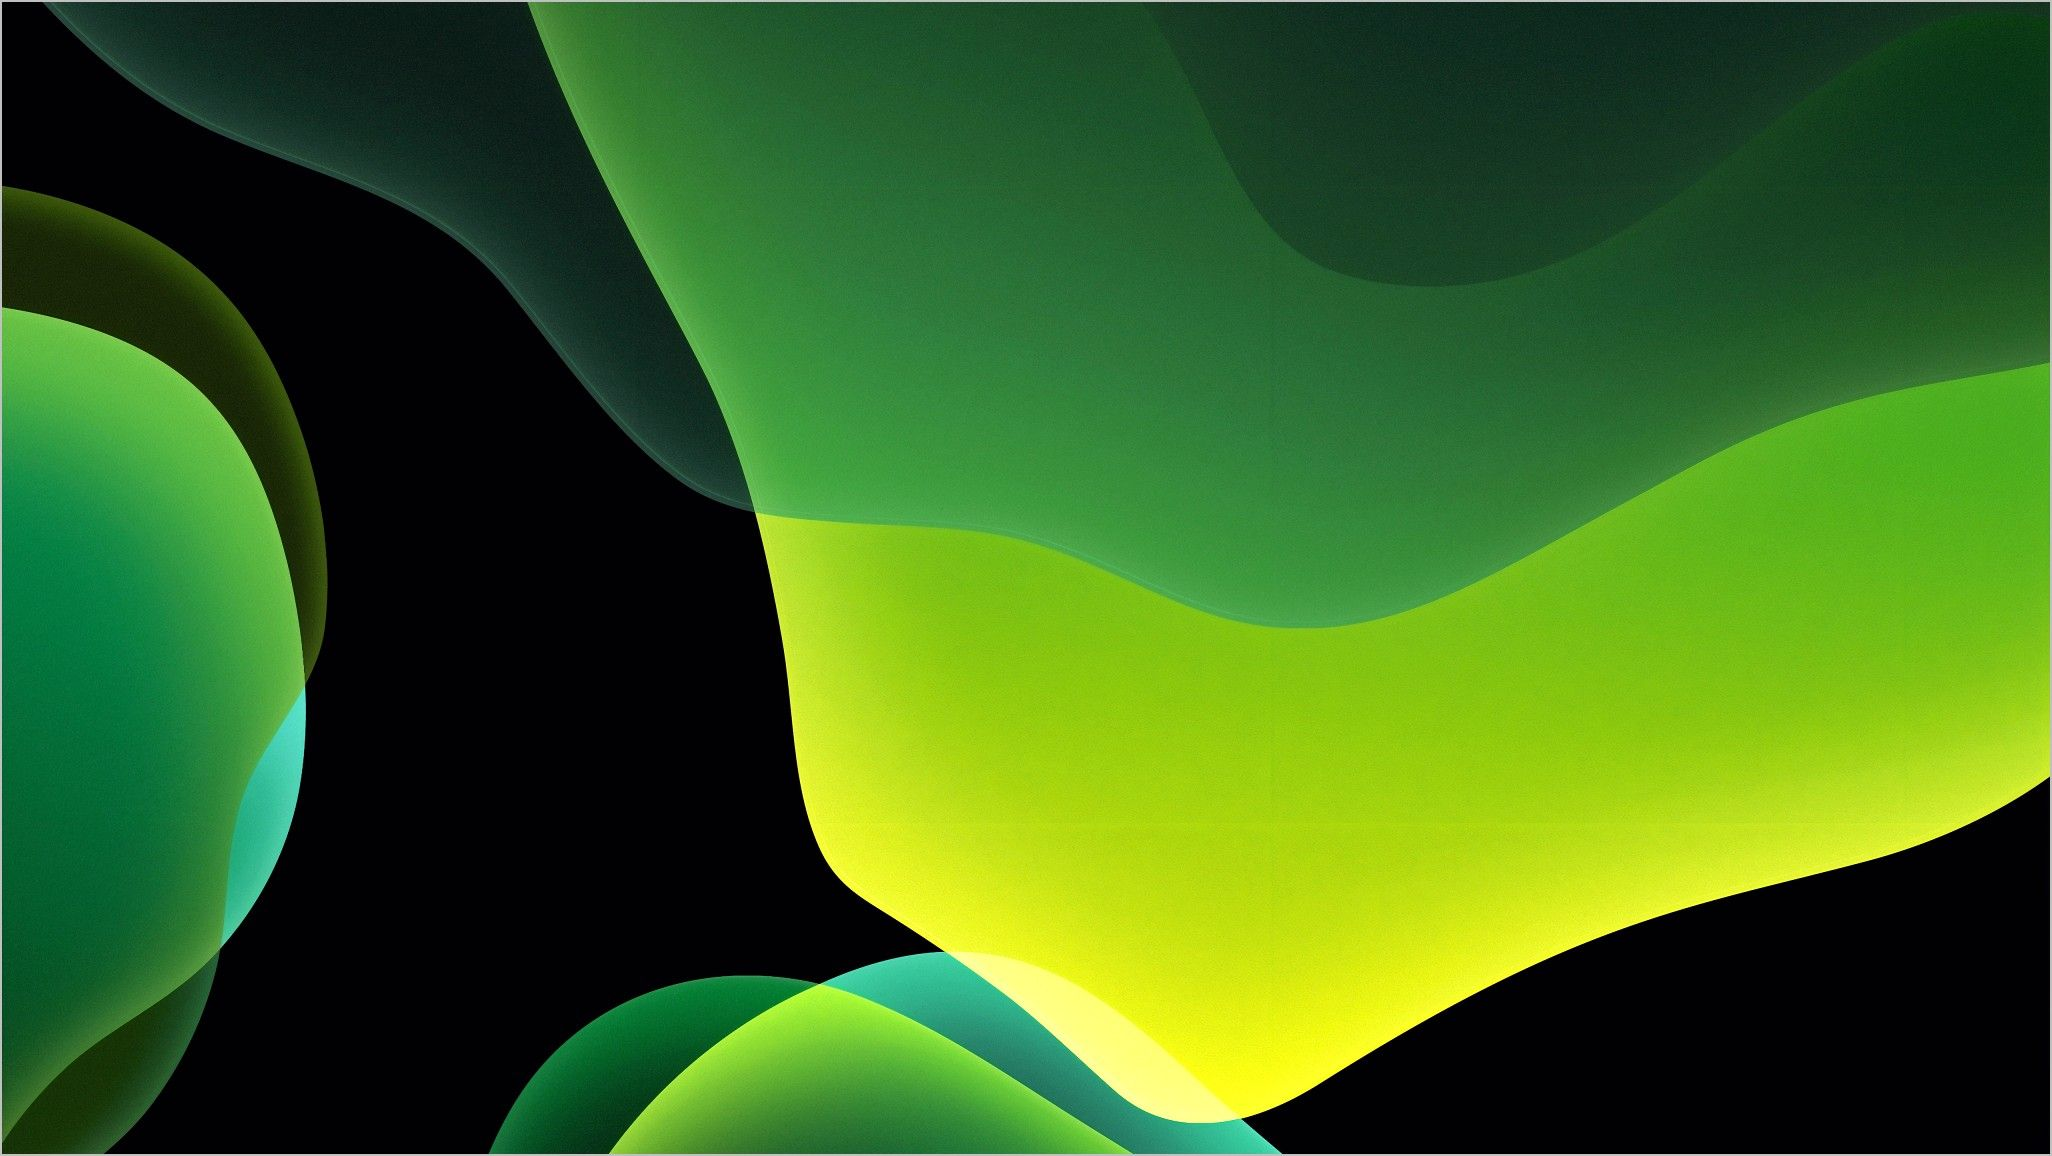 Wallpaper Dark Green 4k In 2020 Dark Wallpaper Abstract Wallpaper